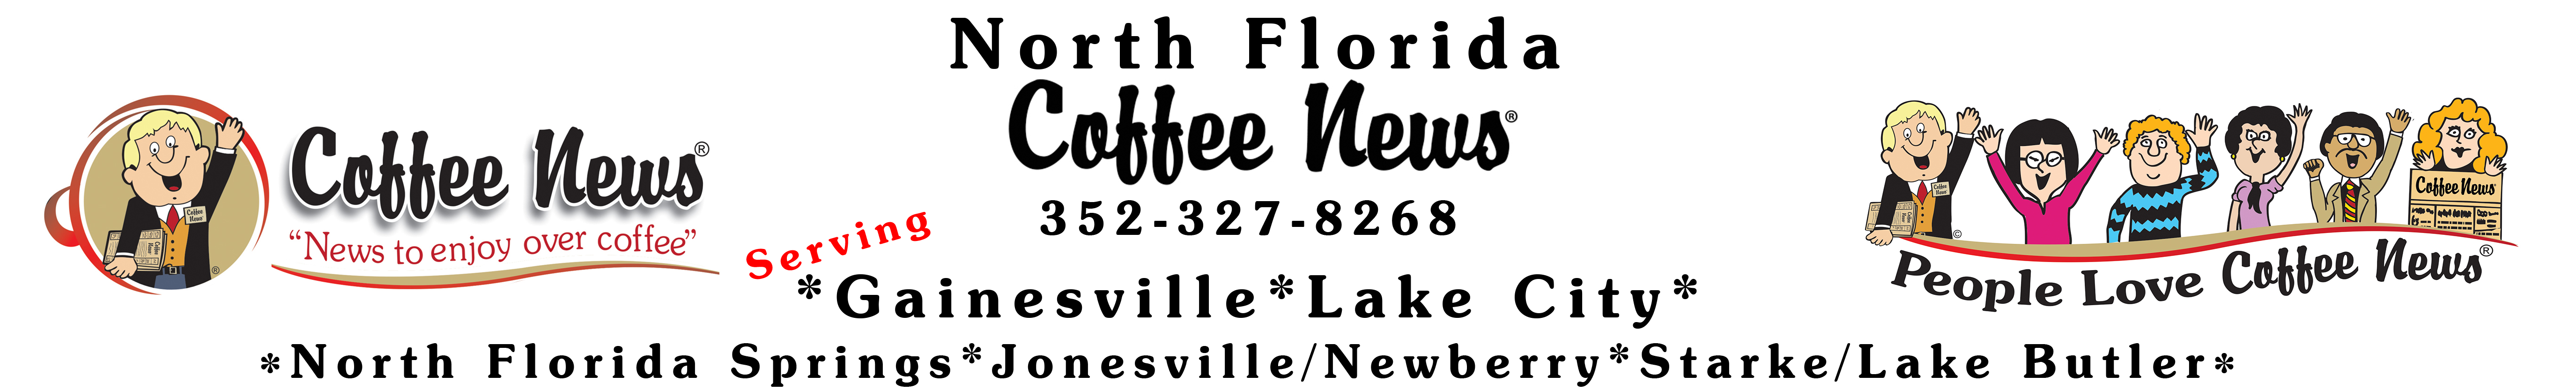 North Florida Coffee News Logo